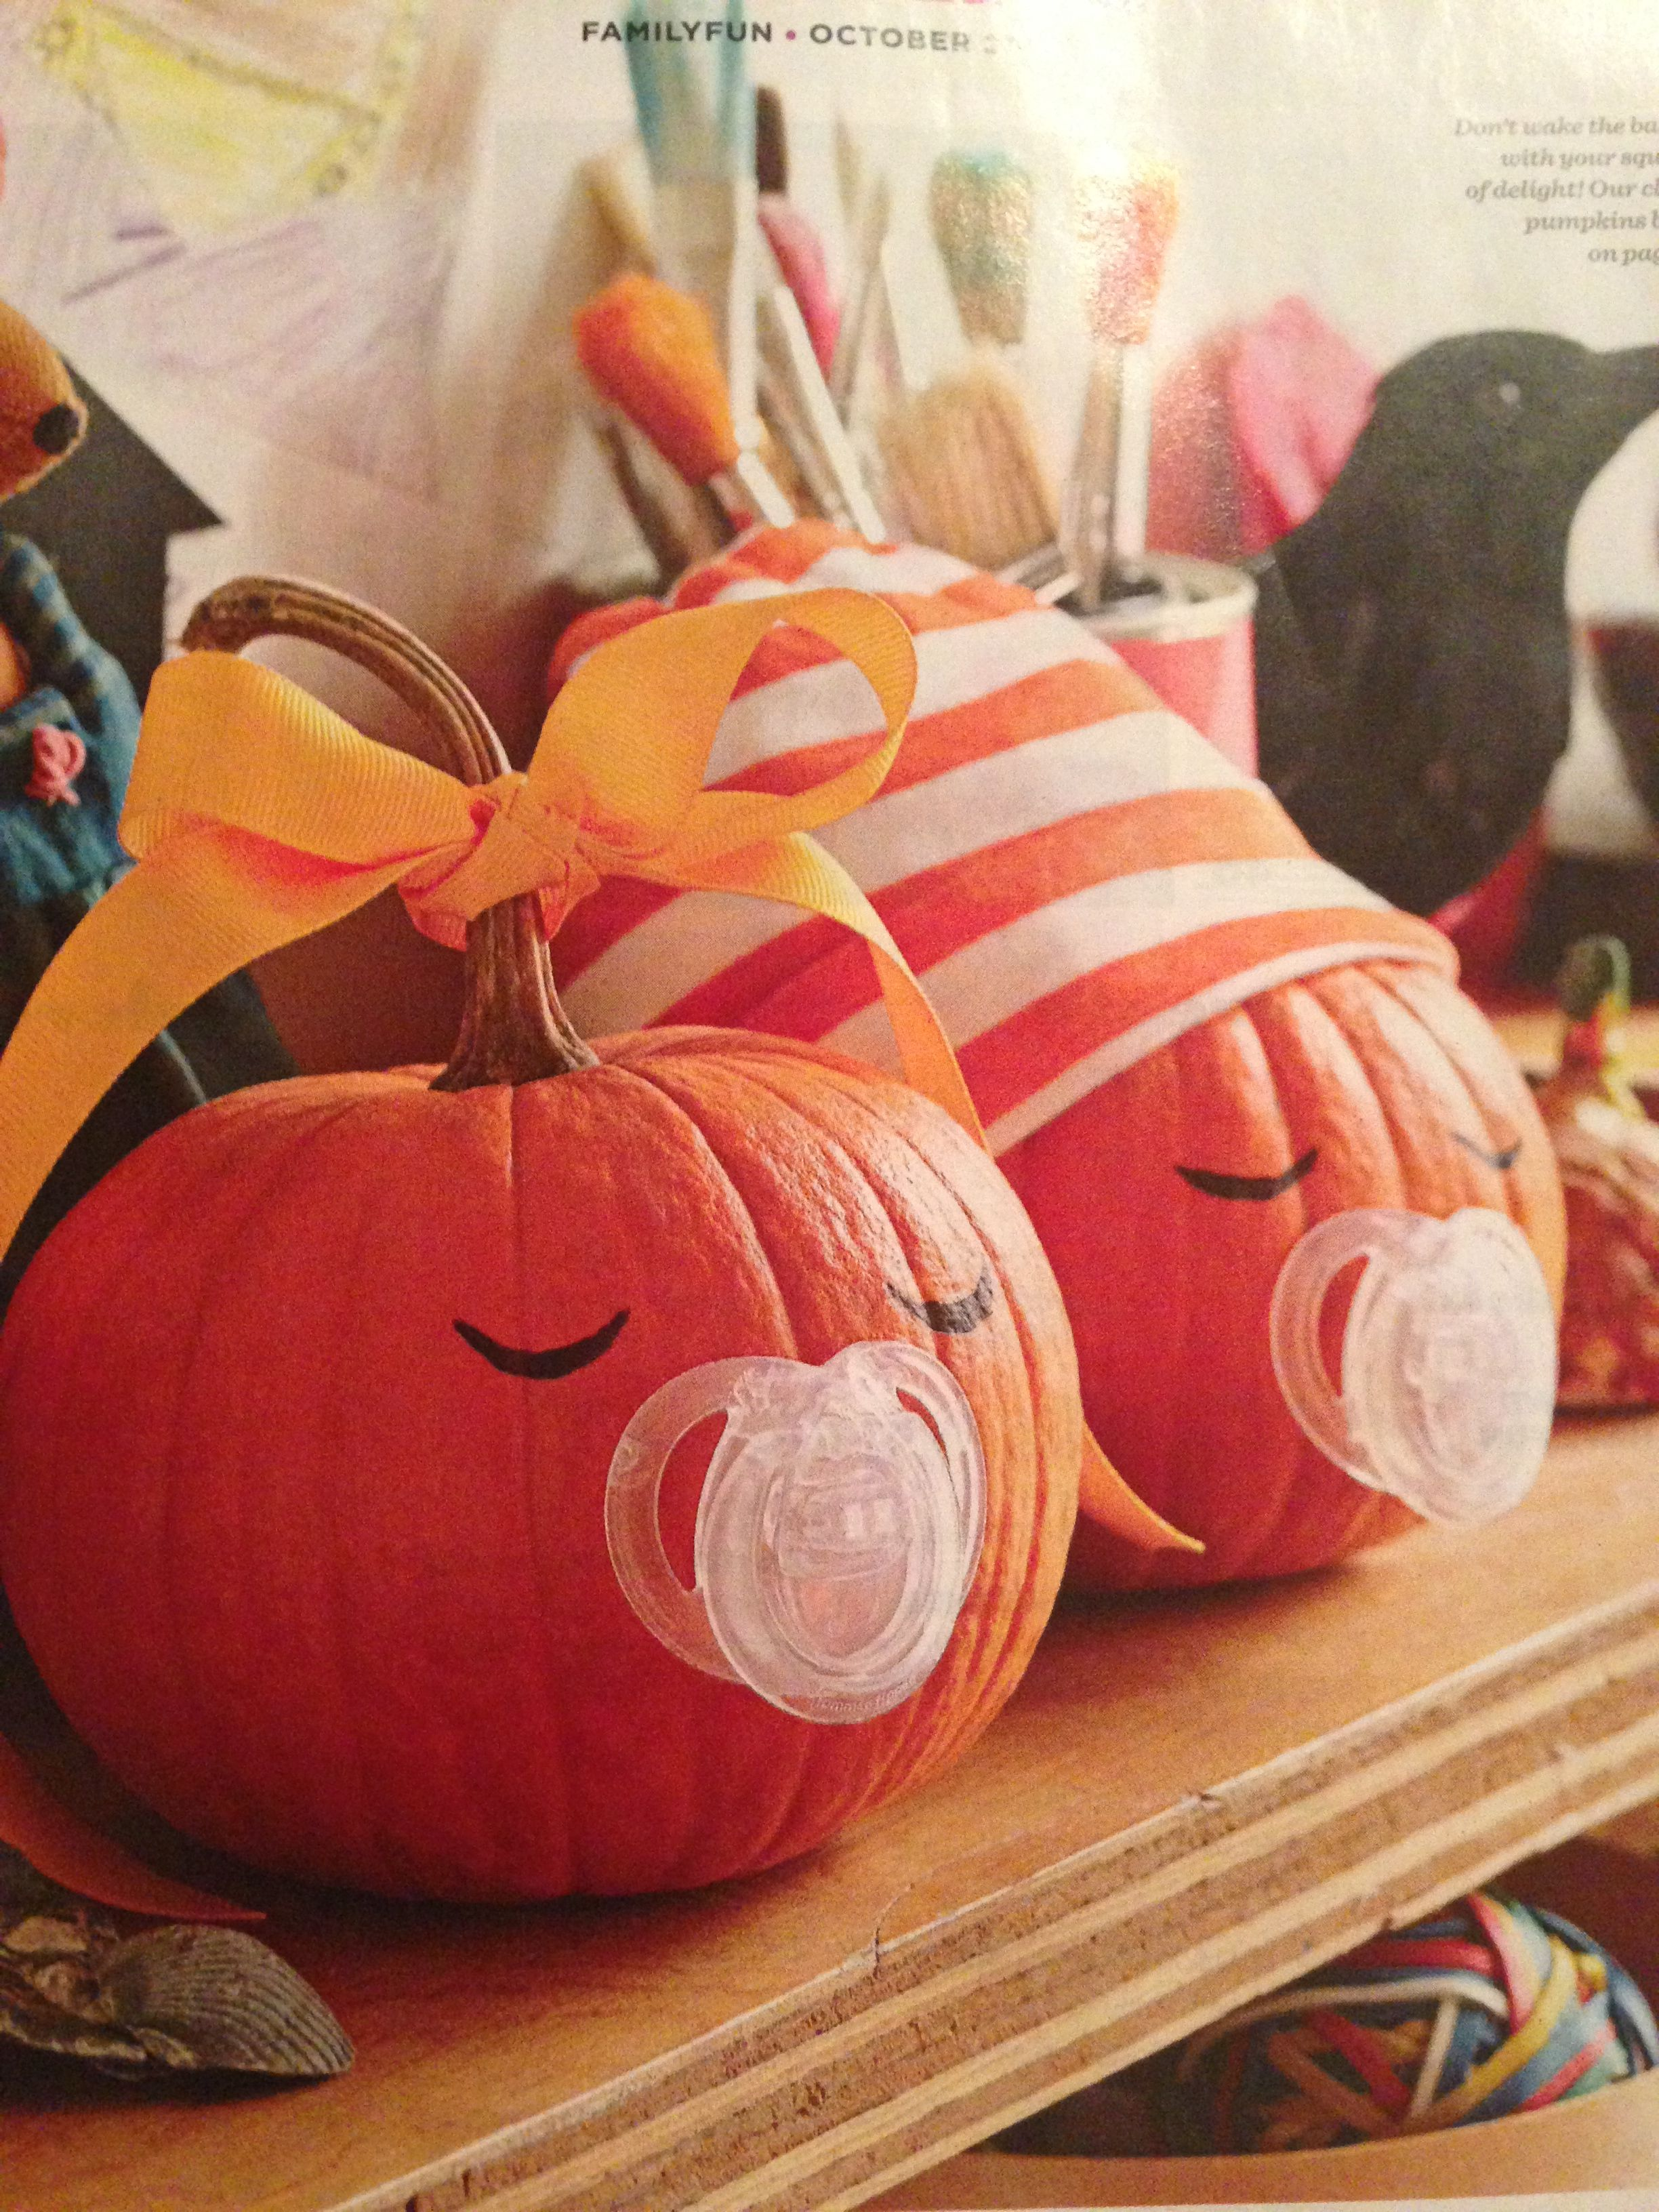 Pin By Esther Knapp On Baby Stuff Baby In Pumpkin Baby Shower Pumpkin Baby Shower Fall